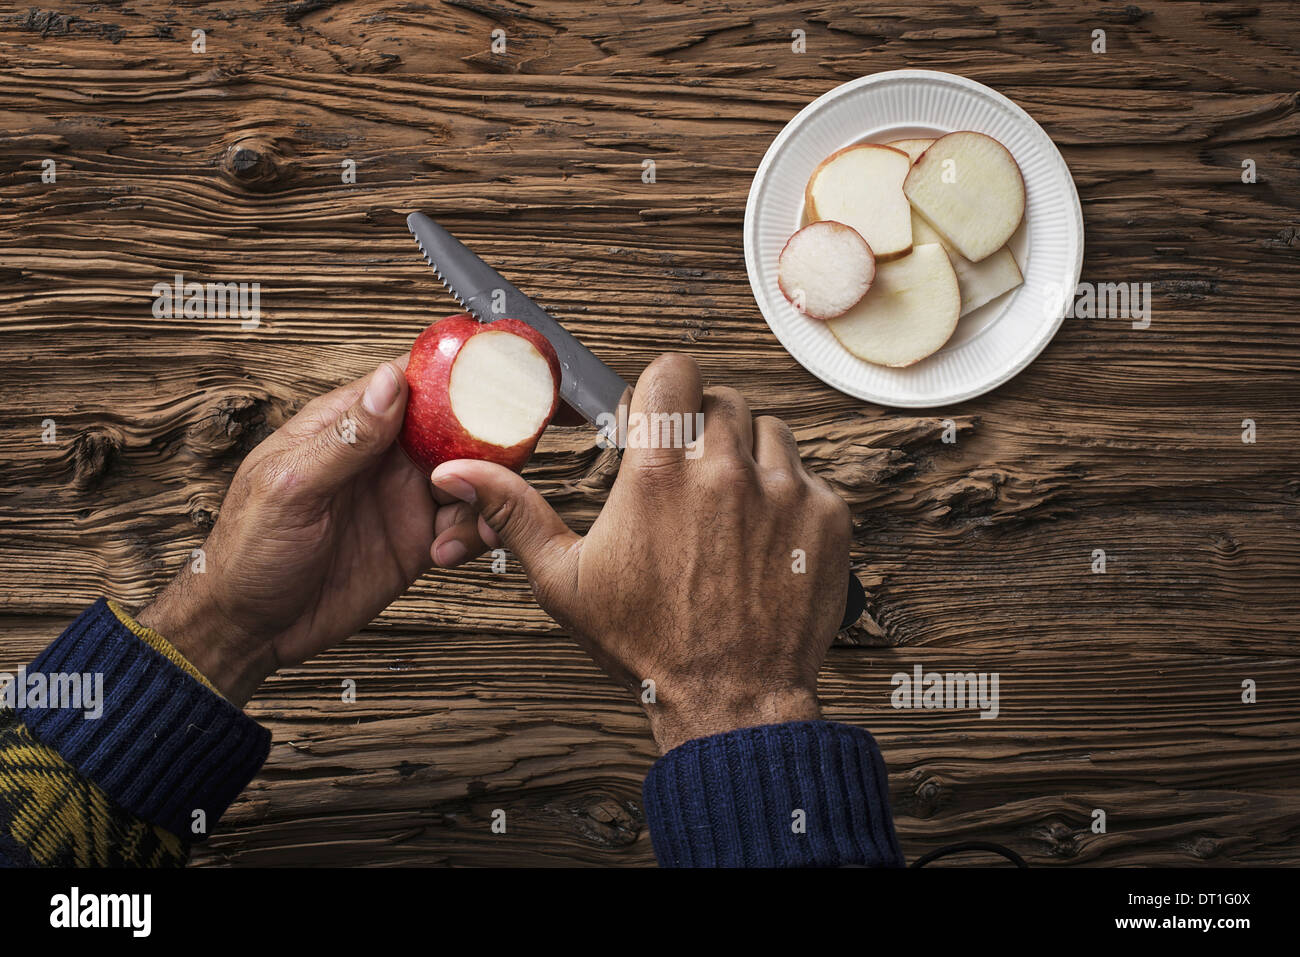 A person holding and slicing sections of a red skinned apple - Stock Image